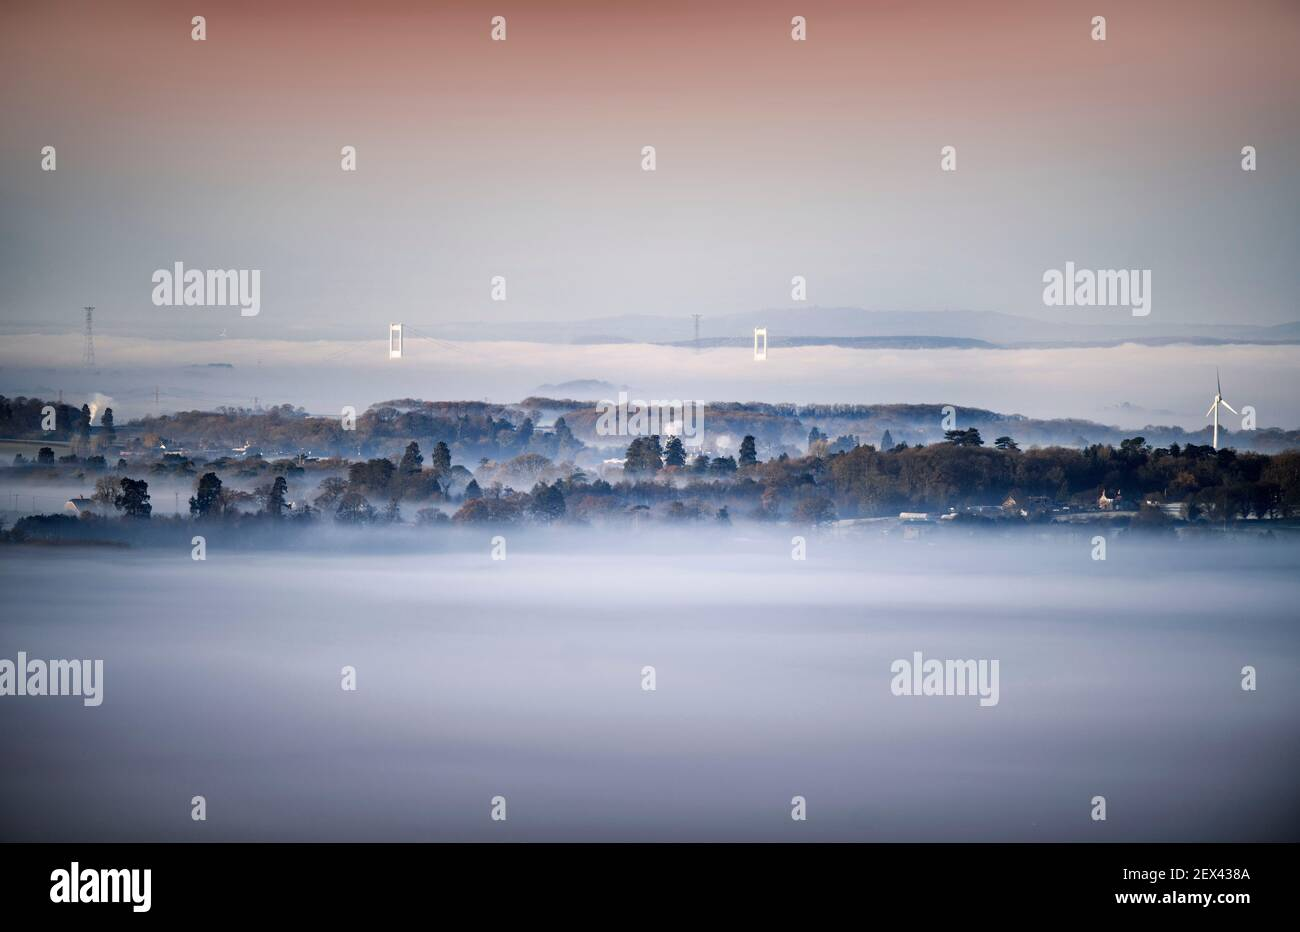 Misty views from the Cotswold Escarpment near Wotton-under-Edge in Gloucestershire looking towards the original Severn Bridge Stock Photo